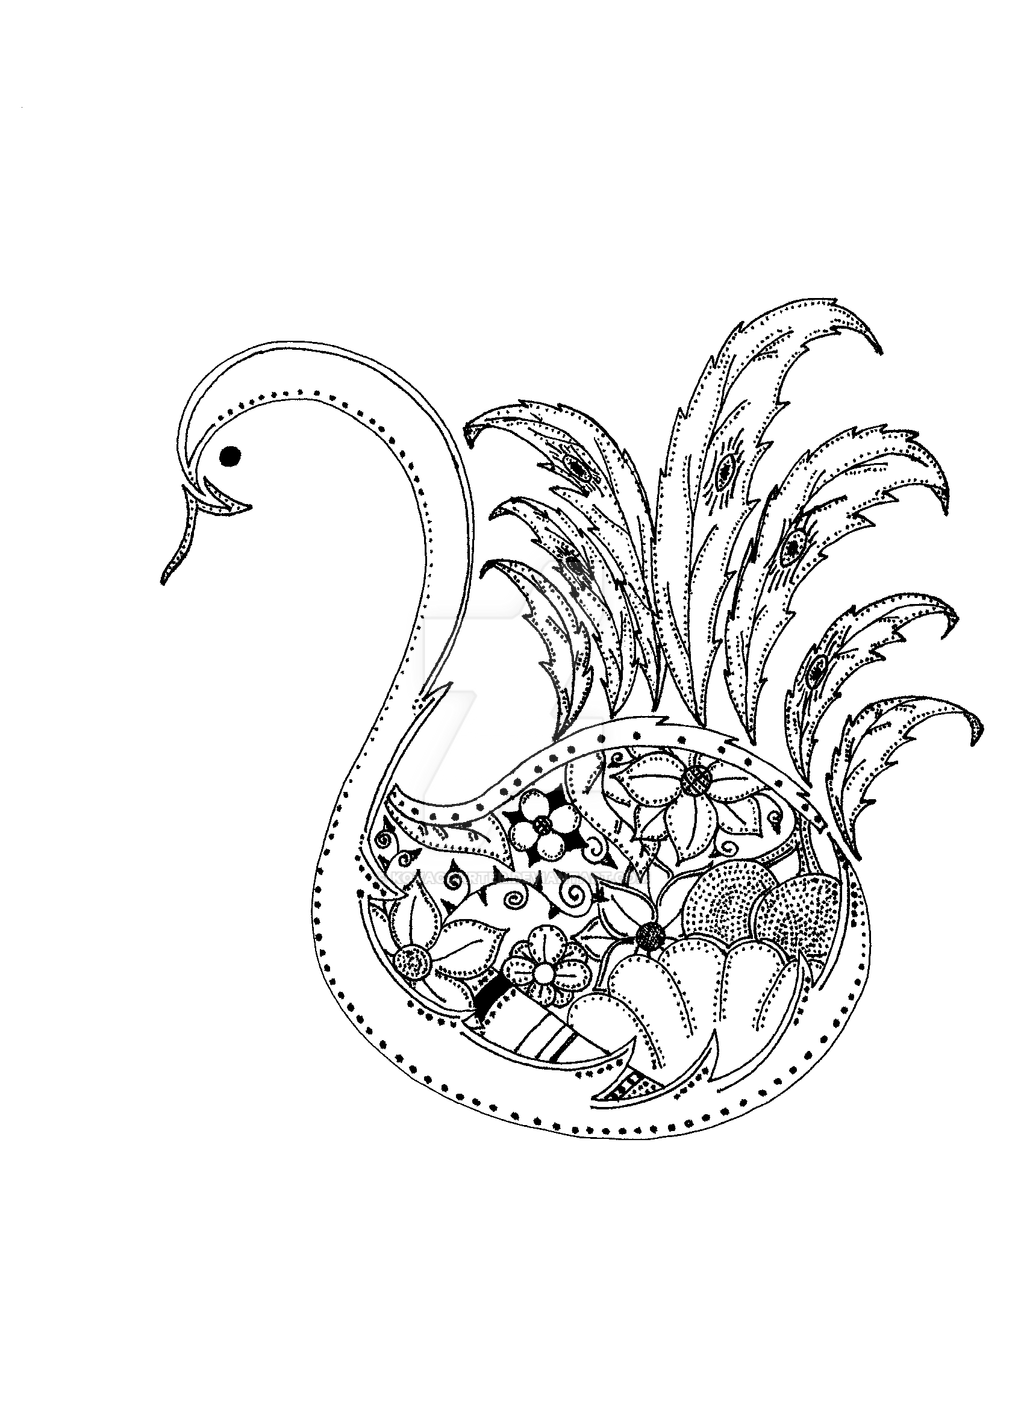 Line Drawing Of Peacock : Peacock line drawing by kovaccarter on deviantart